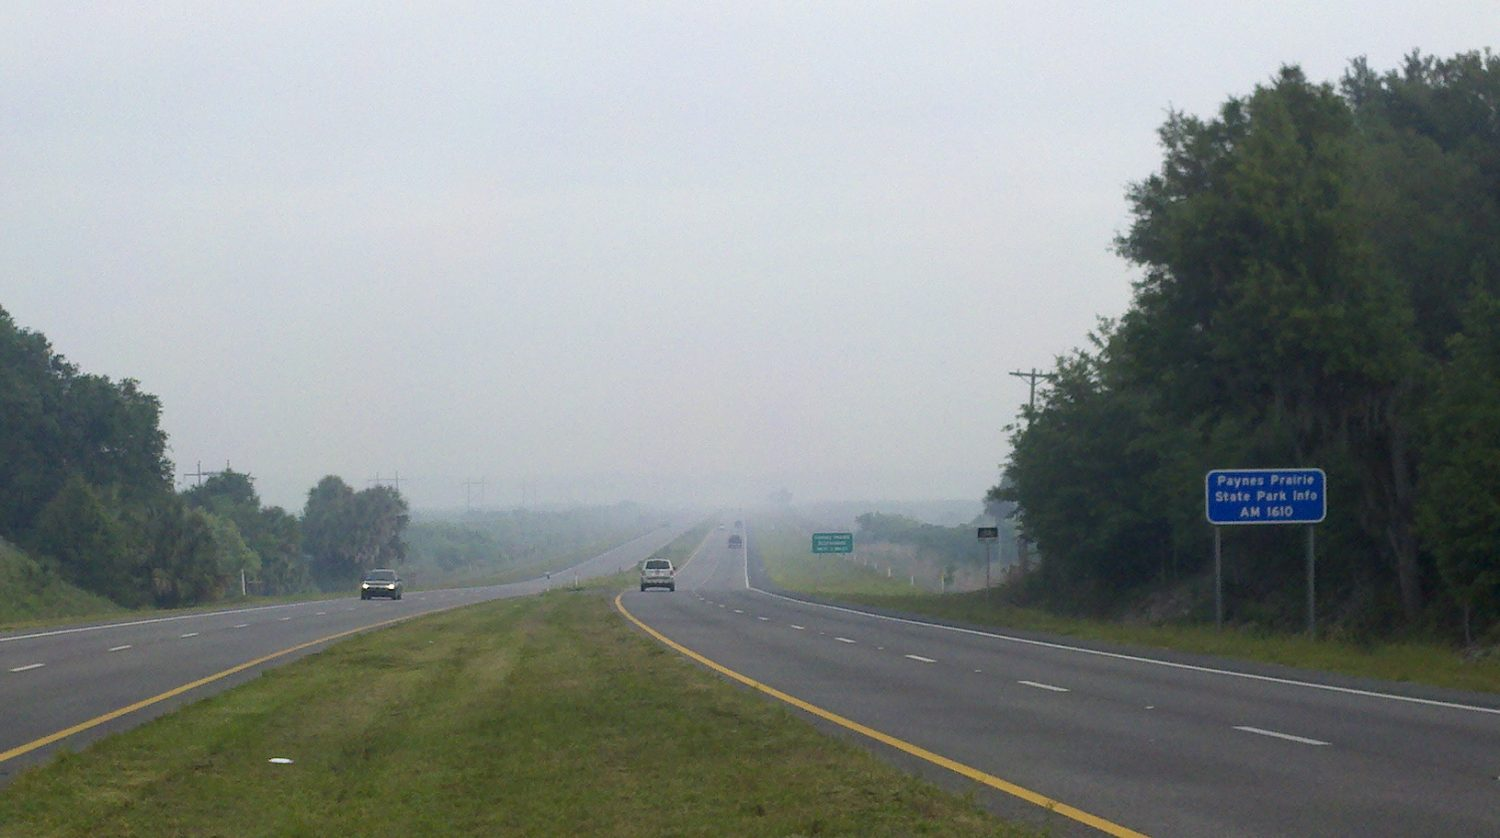 Smoke from recent wildfires is evident on U.S. Highway 441 across Payne's Prairie.